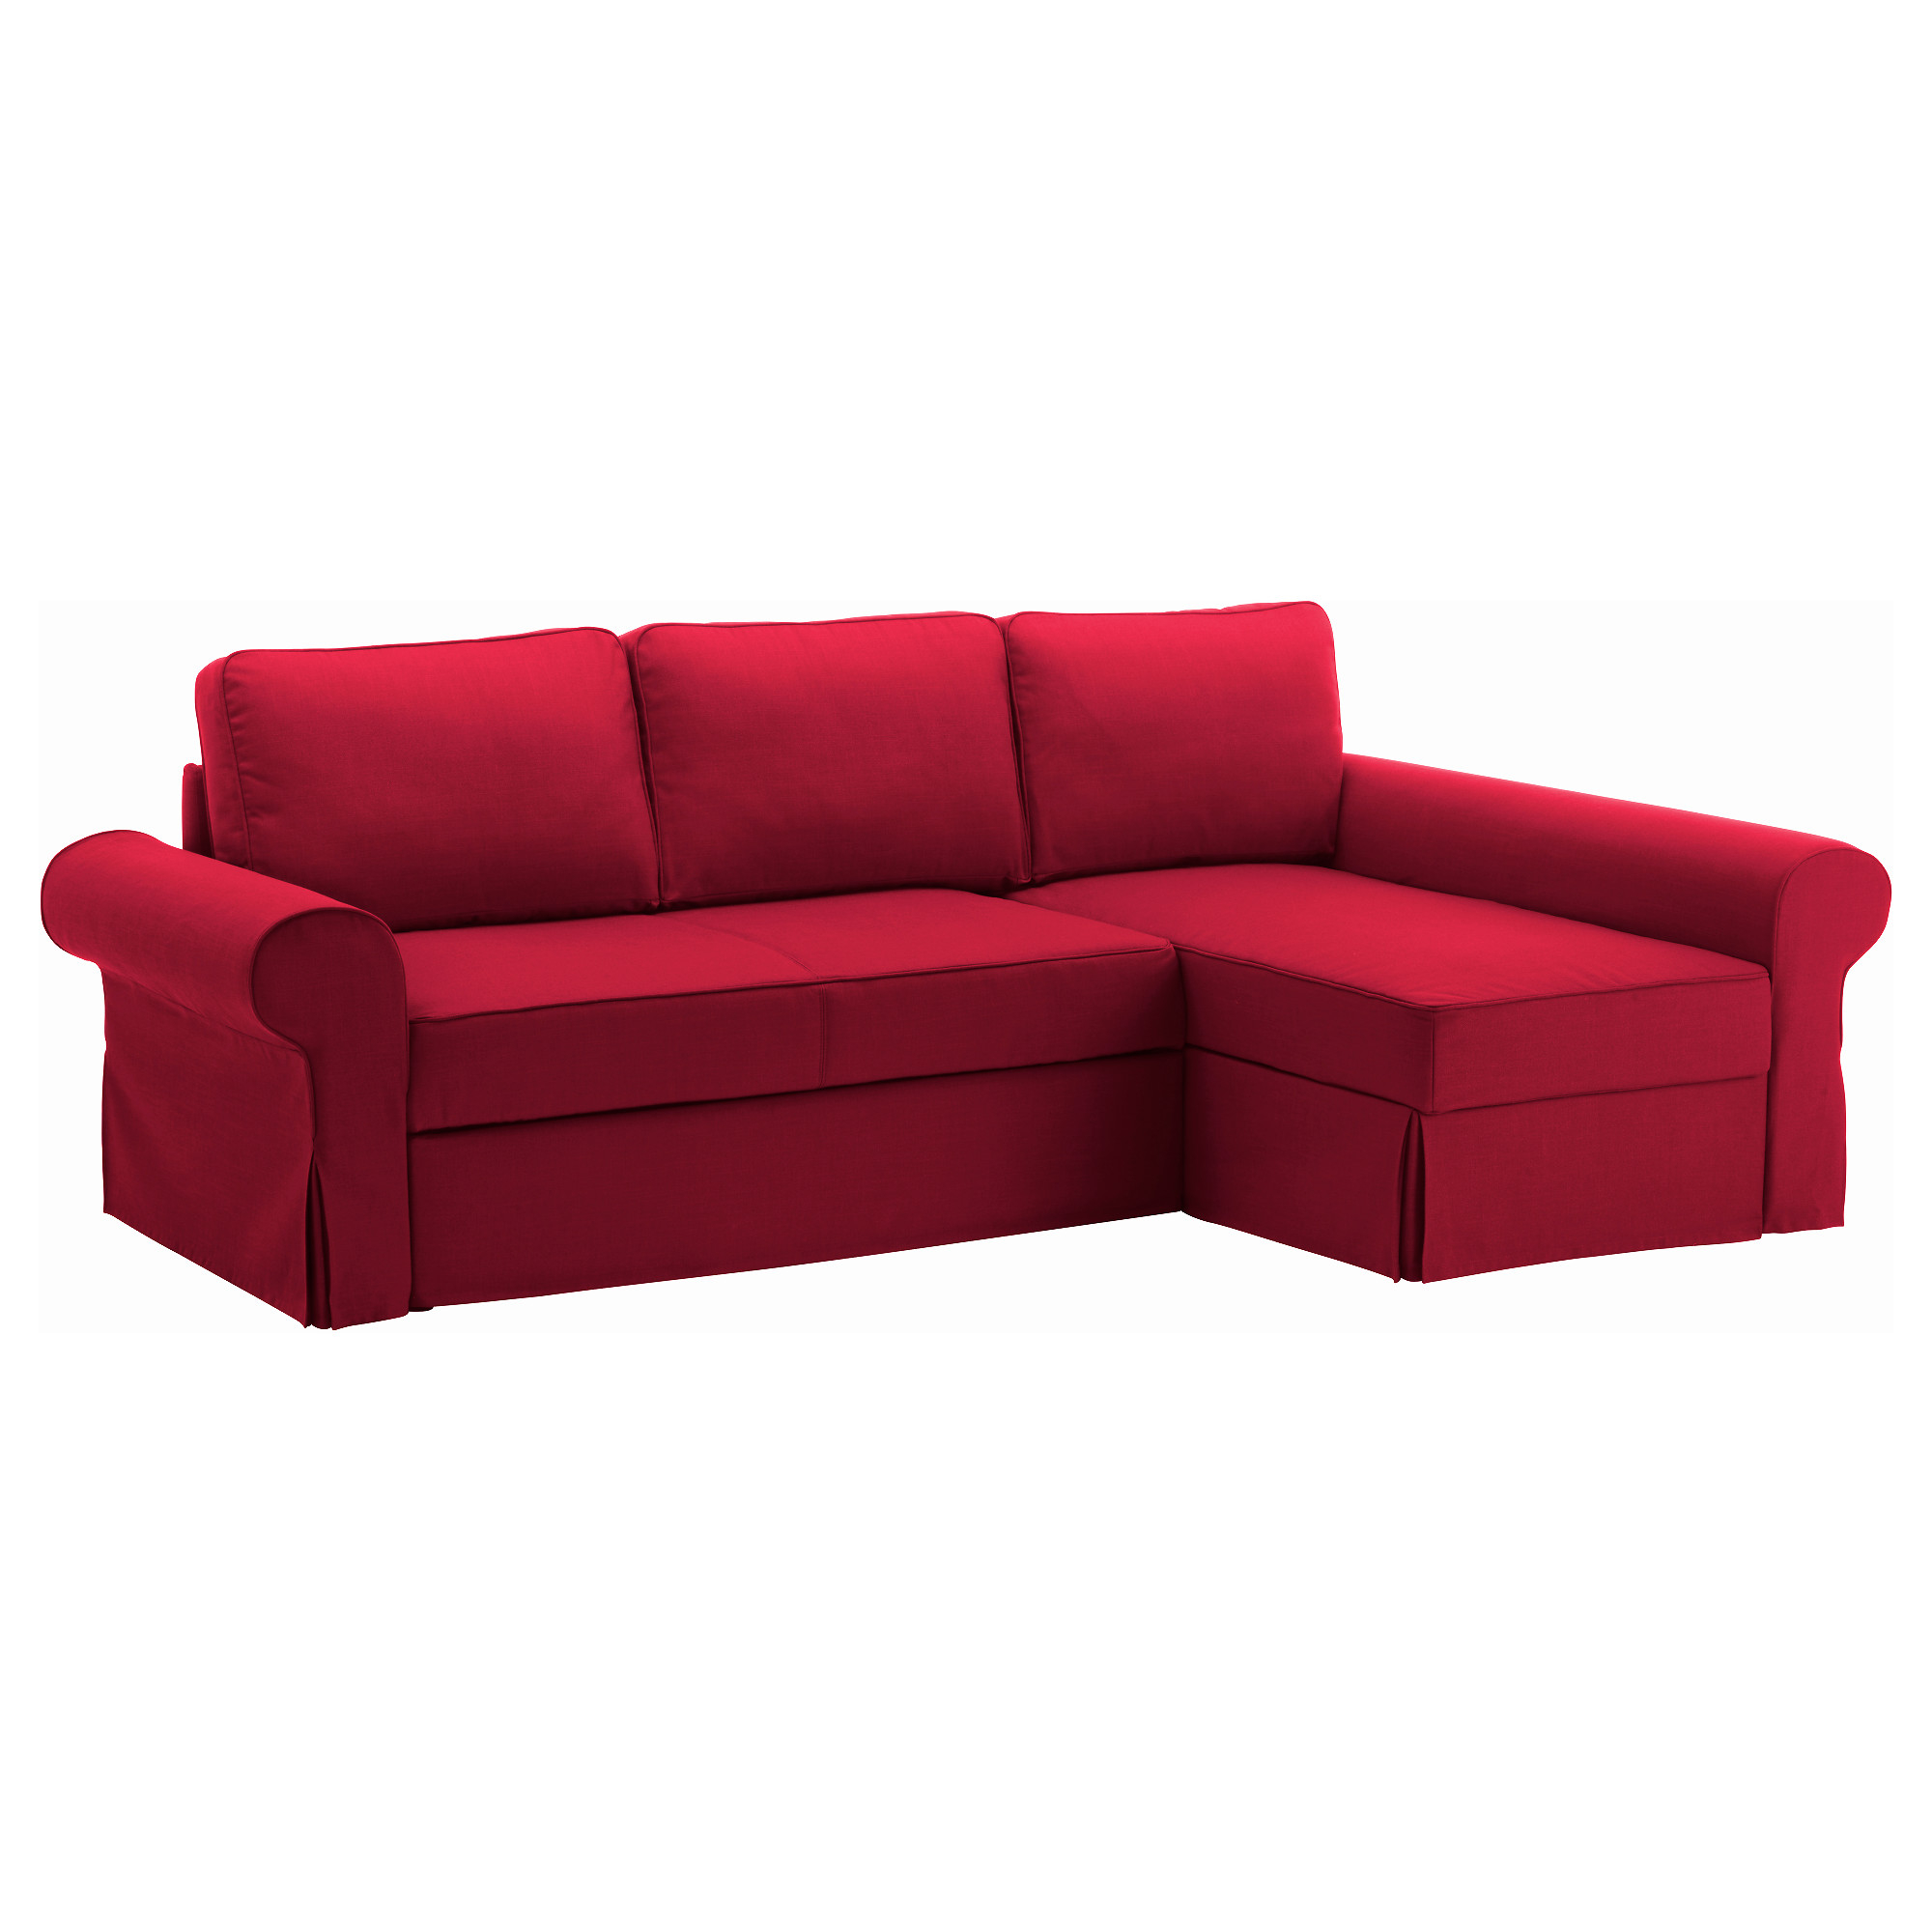 Ikea sofas Camas Irdz sofa Make Your Home Look Neat and Cozy with Futons at Ikea